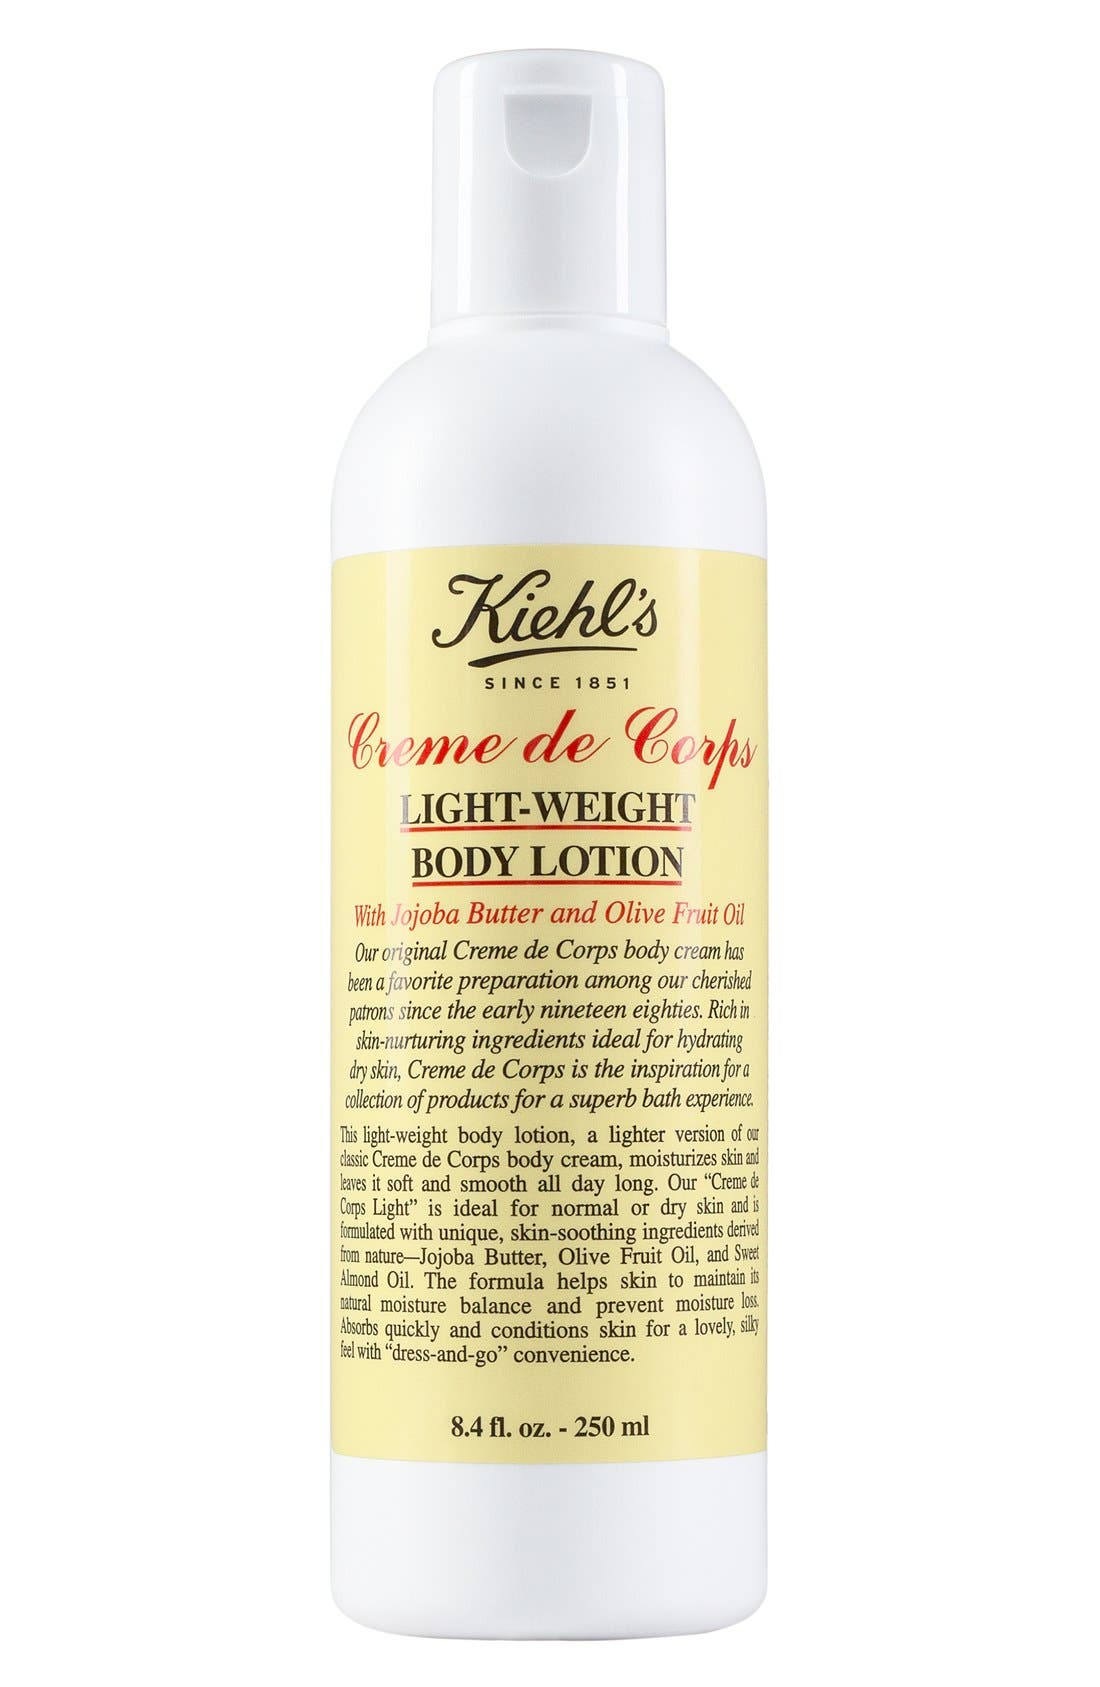 Kiehl's Since 1851 'Creme de Corps' Light-Weight Body Lotion